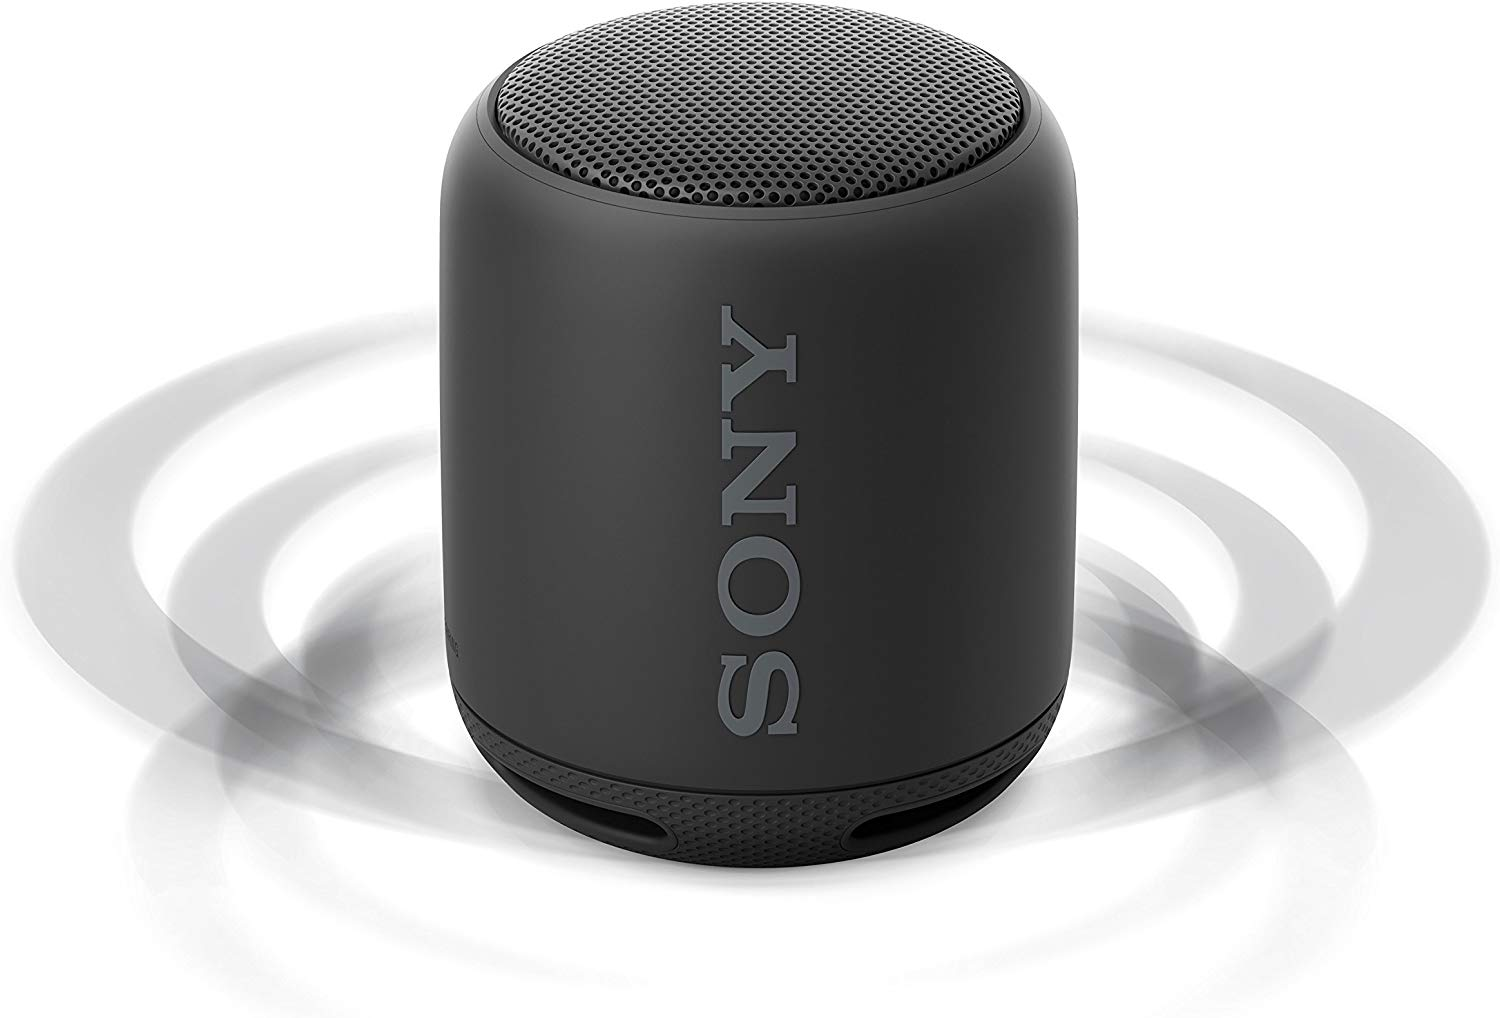 Sony SRS-XB10 EXTRA BASS Portable Splash-proof Wireless Speaker with Bluetooth and NFC (Black)